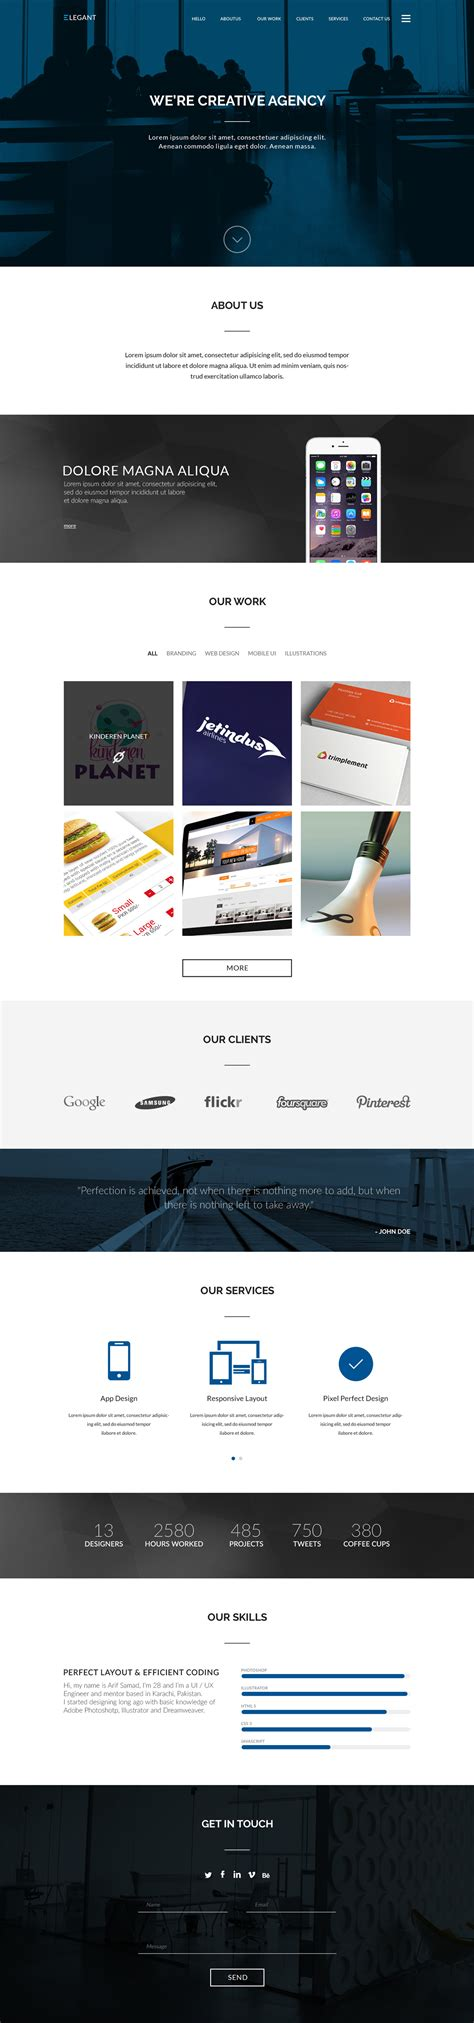 Elegant Free One Page Website Html Template Free Html5 Templates One Page Website Template Free